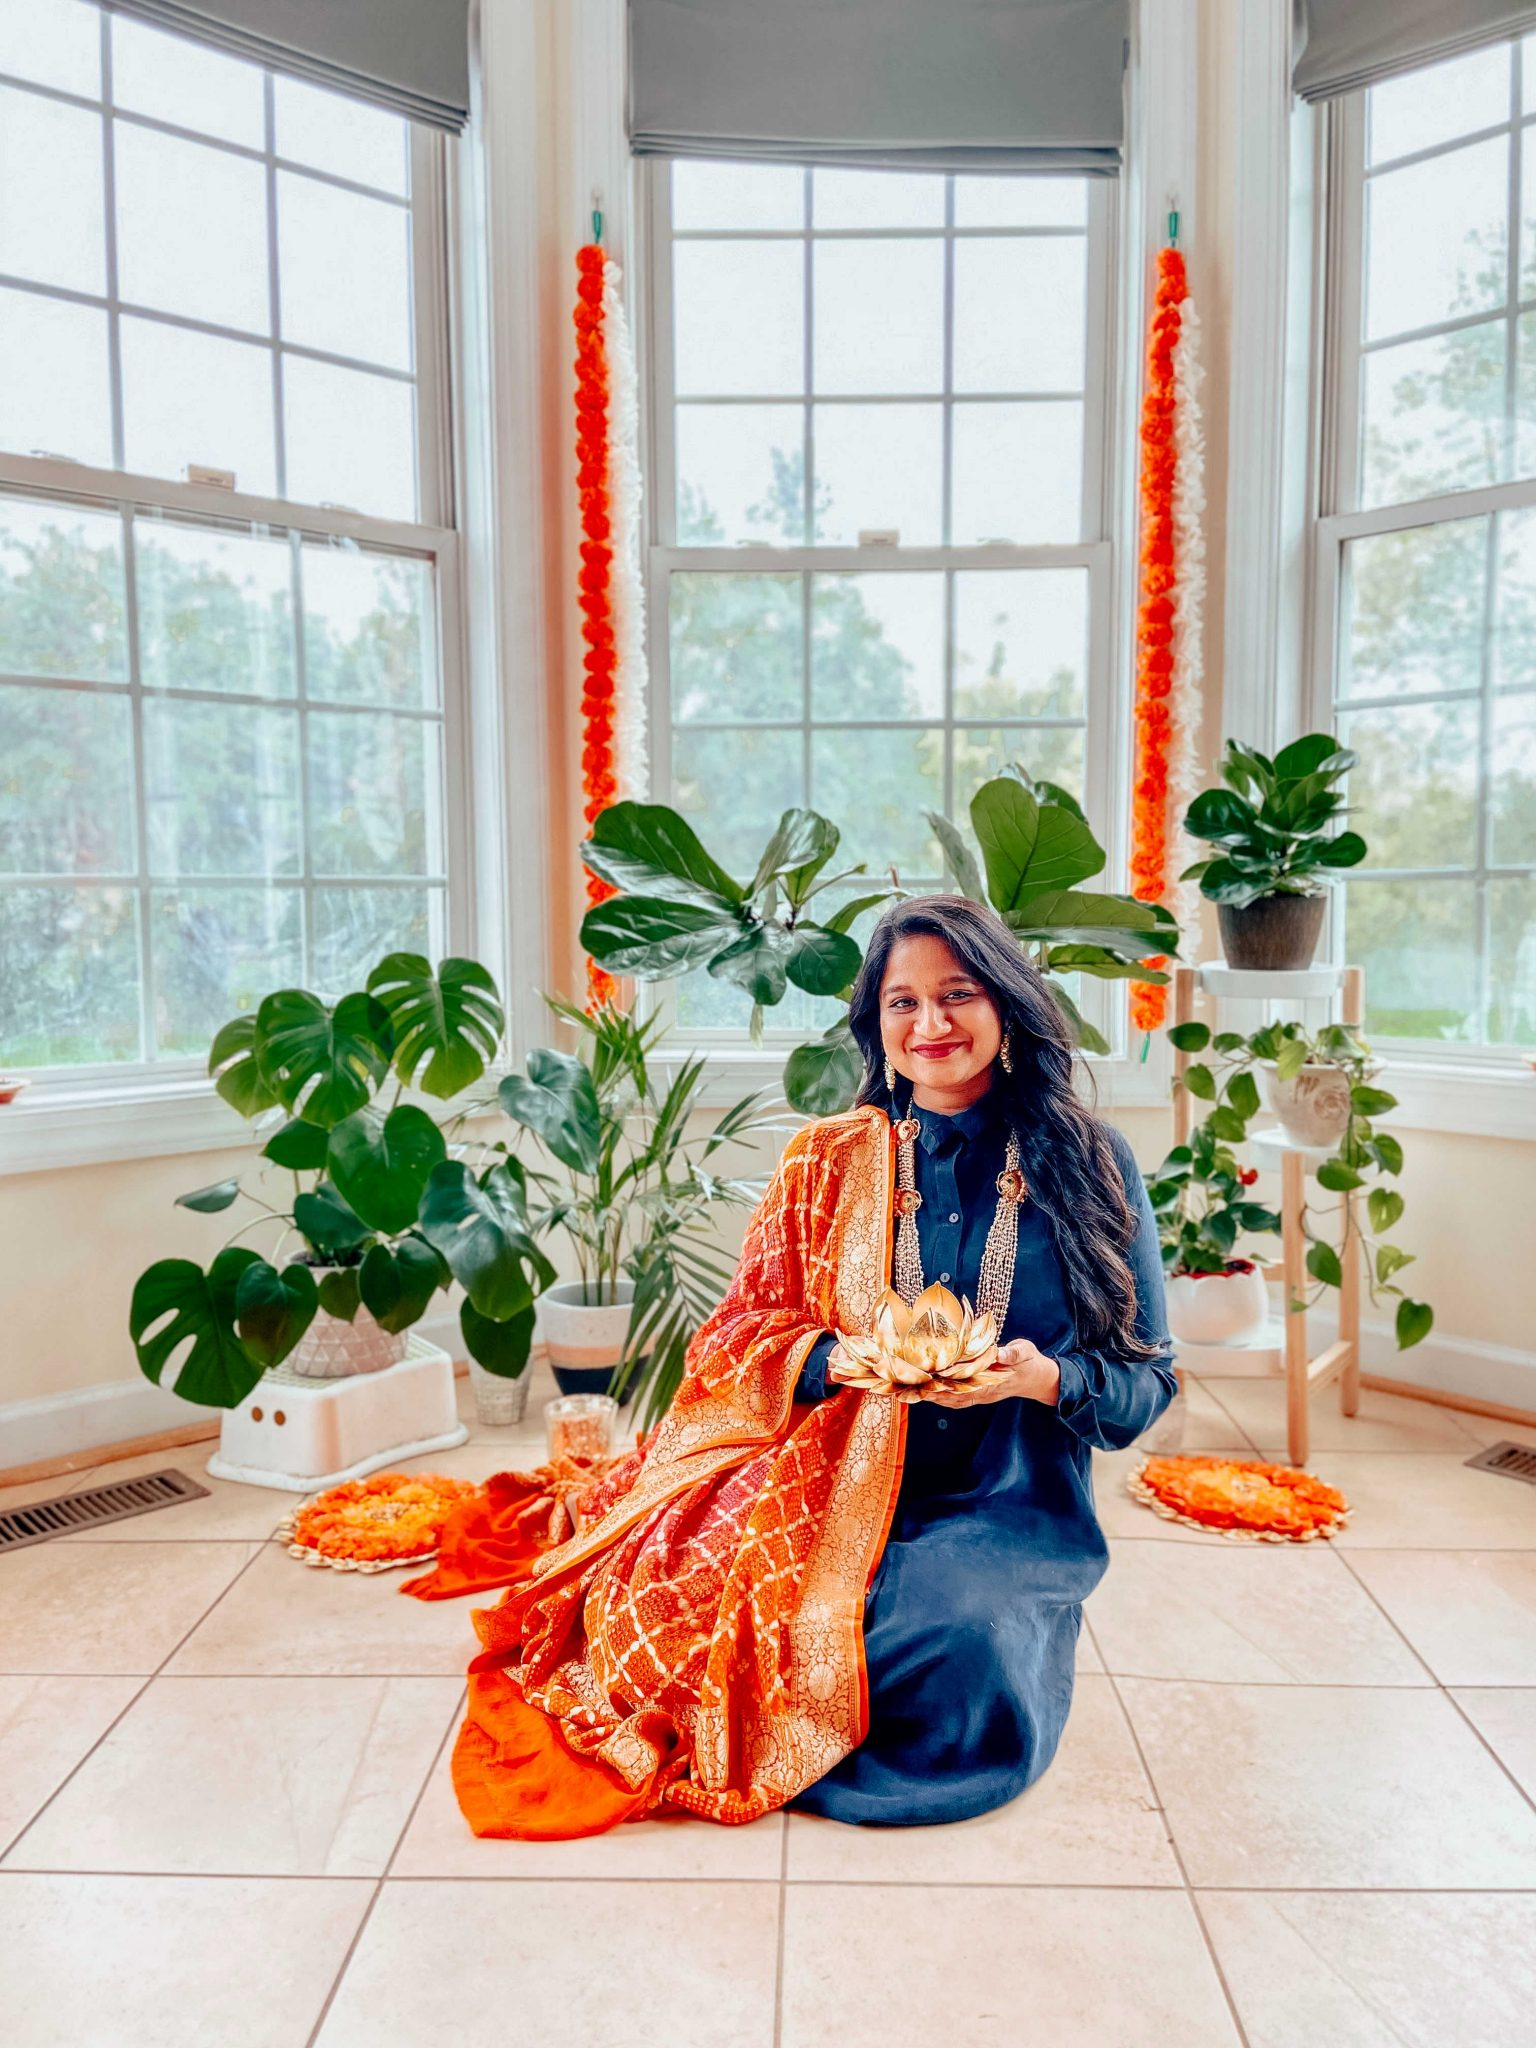 Simple Diwali Decoration ideas featured by top MD lifestyle blogger, Dreaming Loud |Diwali Decoration Ideas: image of a woman wearing Traditional Indian attire and sitting in a bay window area decorated with Wisteria garlands, Marigold Garlands, Curtain string lights, Silver Votives,Lotus diya,Colorful diya, Battery Tea lamps, and Plant stand.